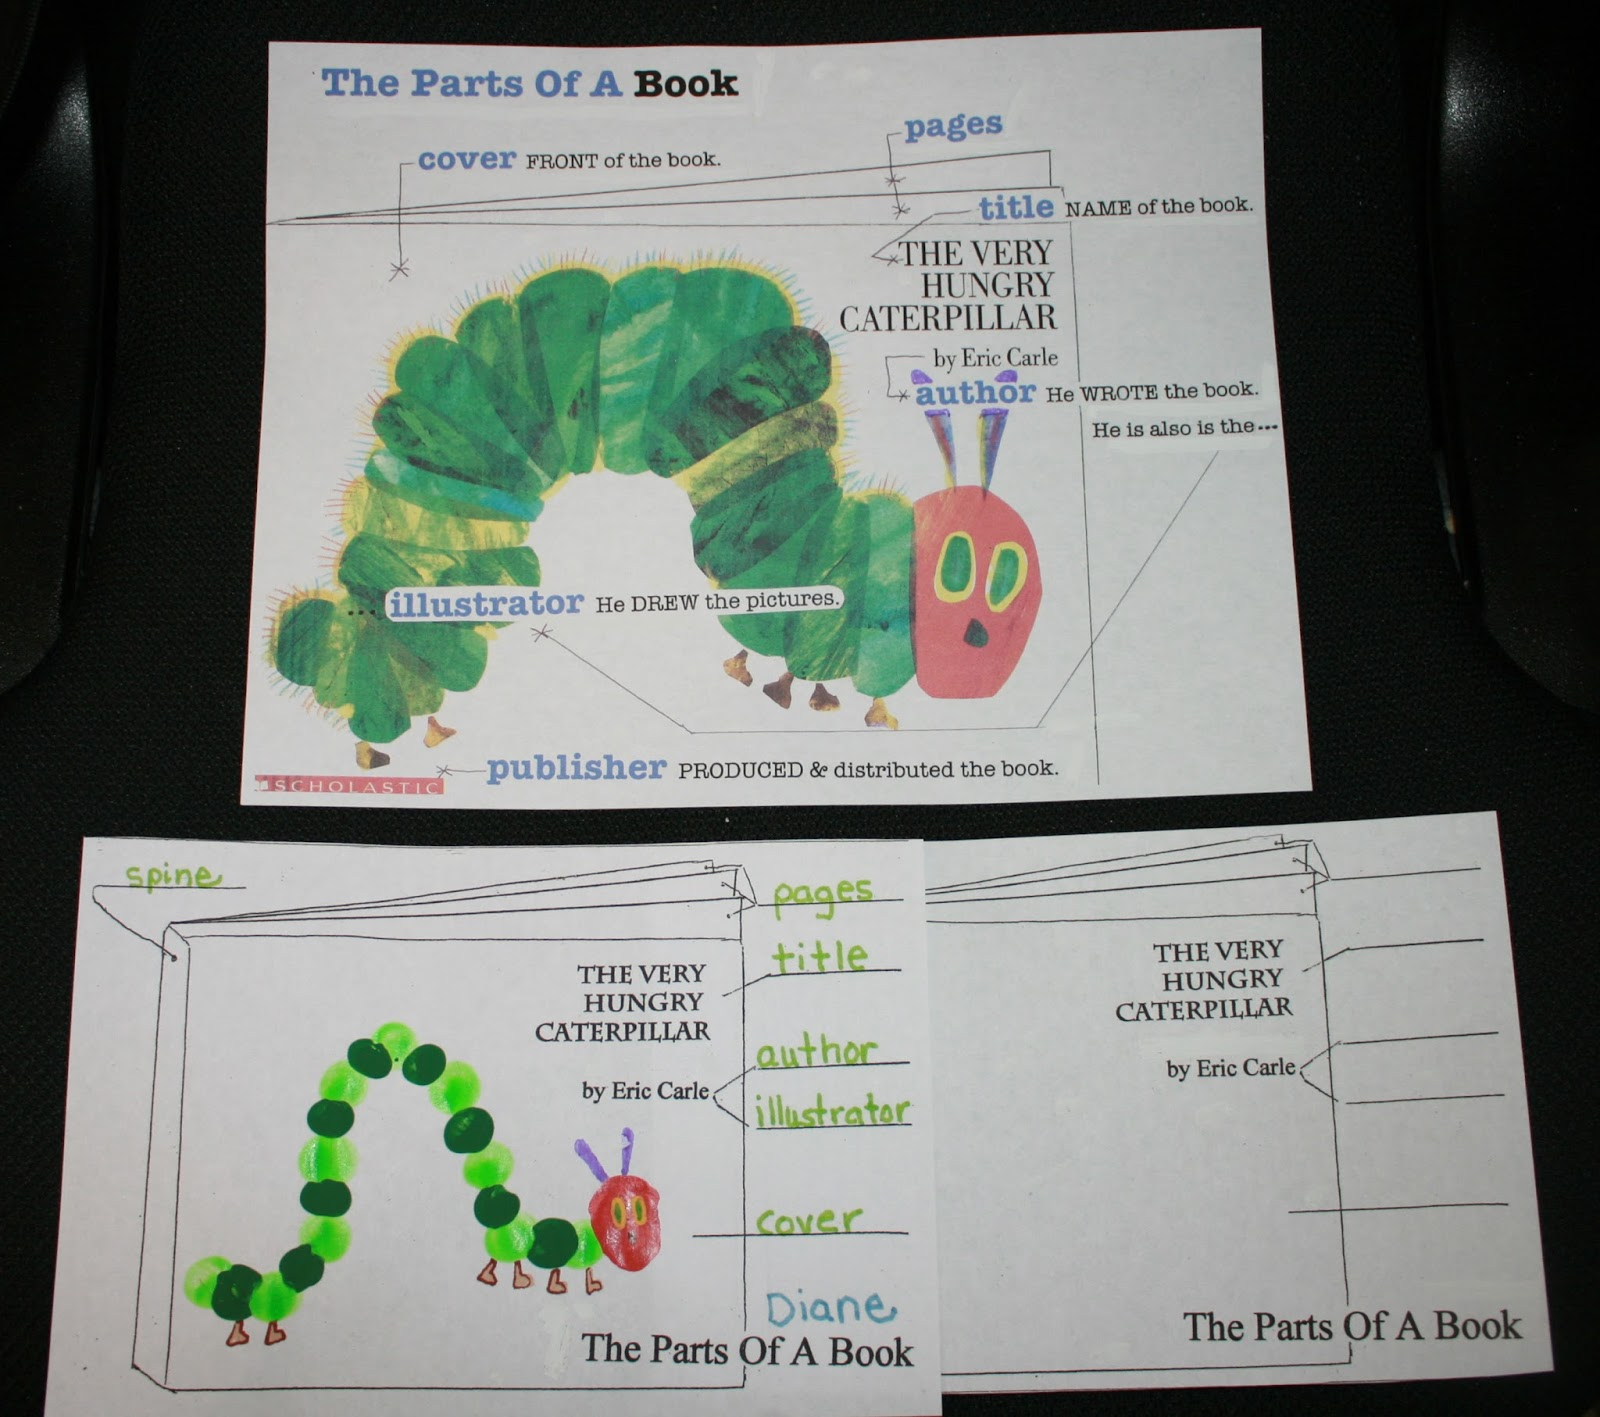 Parts Of A Book For The Very Hungry Caterpillar